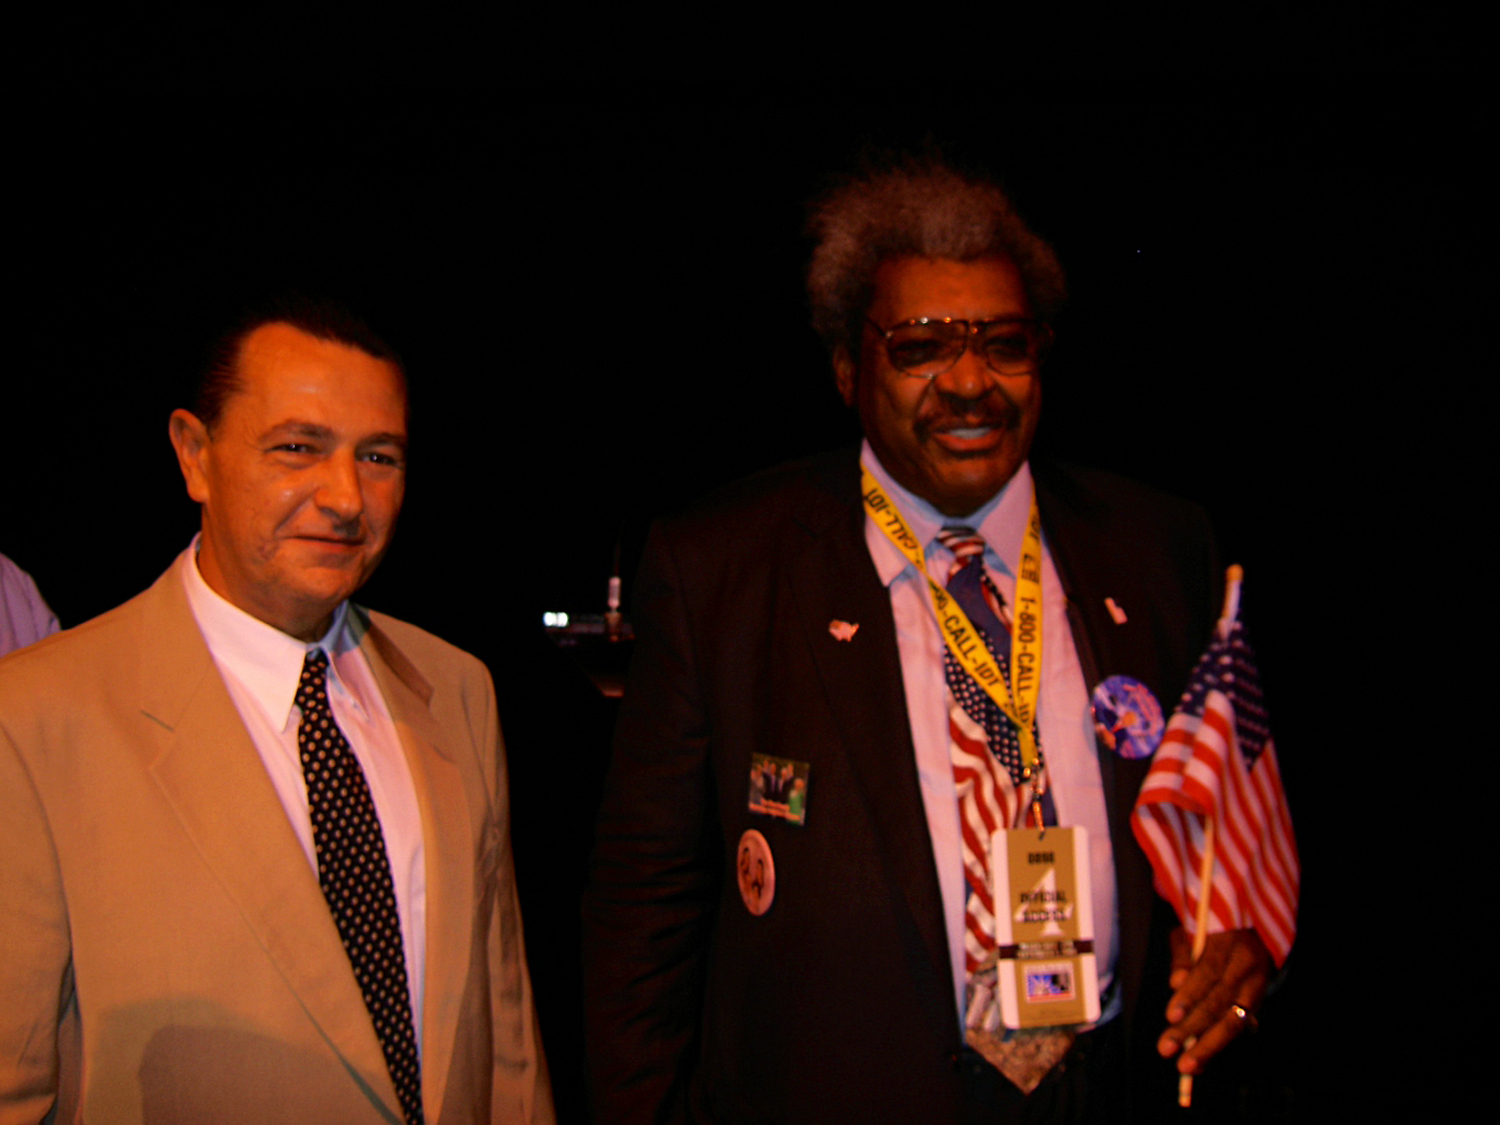 Don King and Vladimir Nazarov